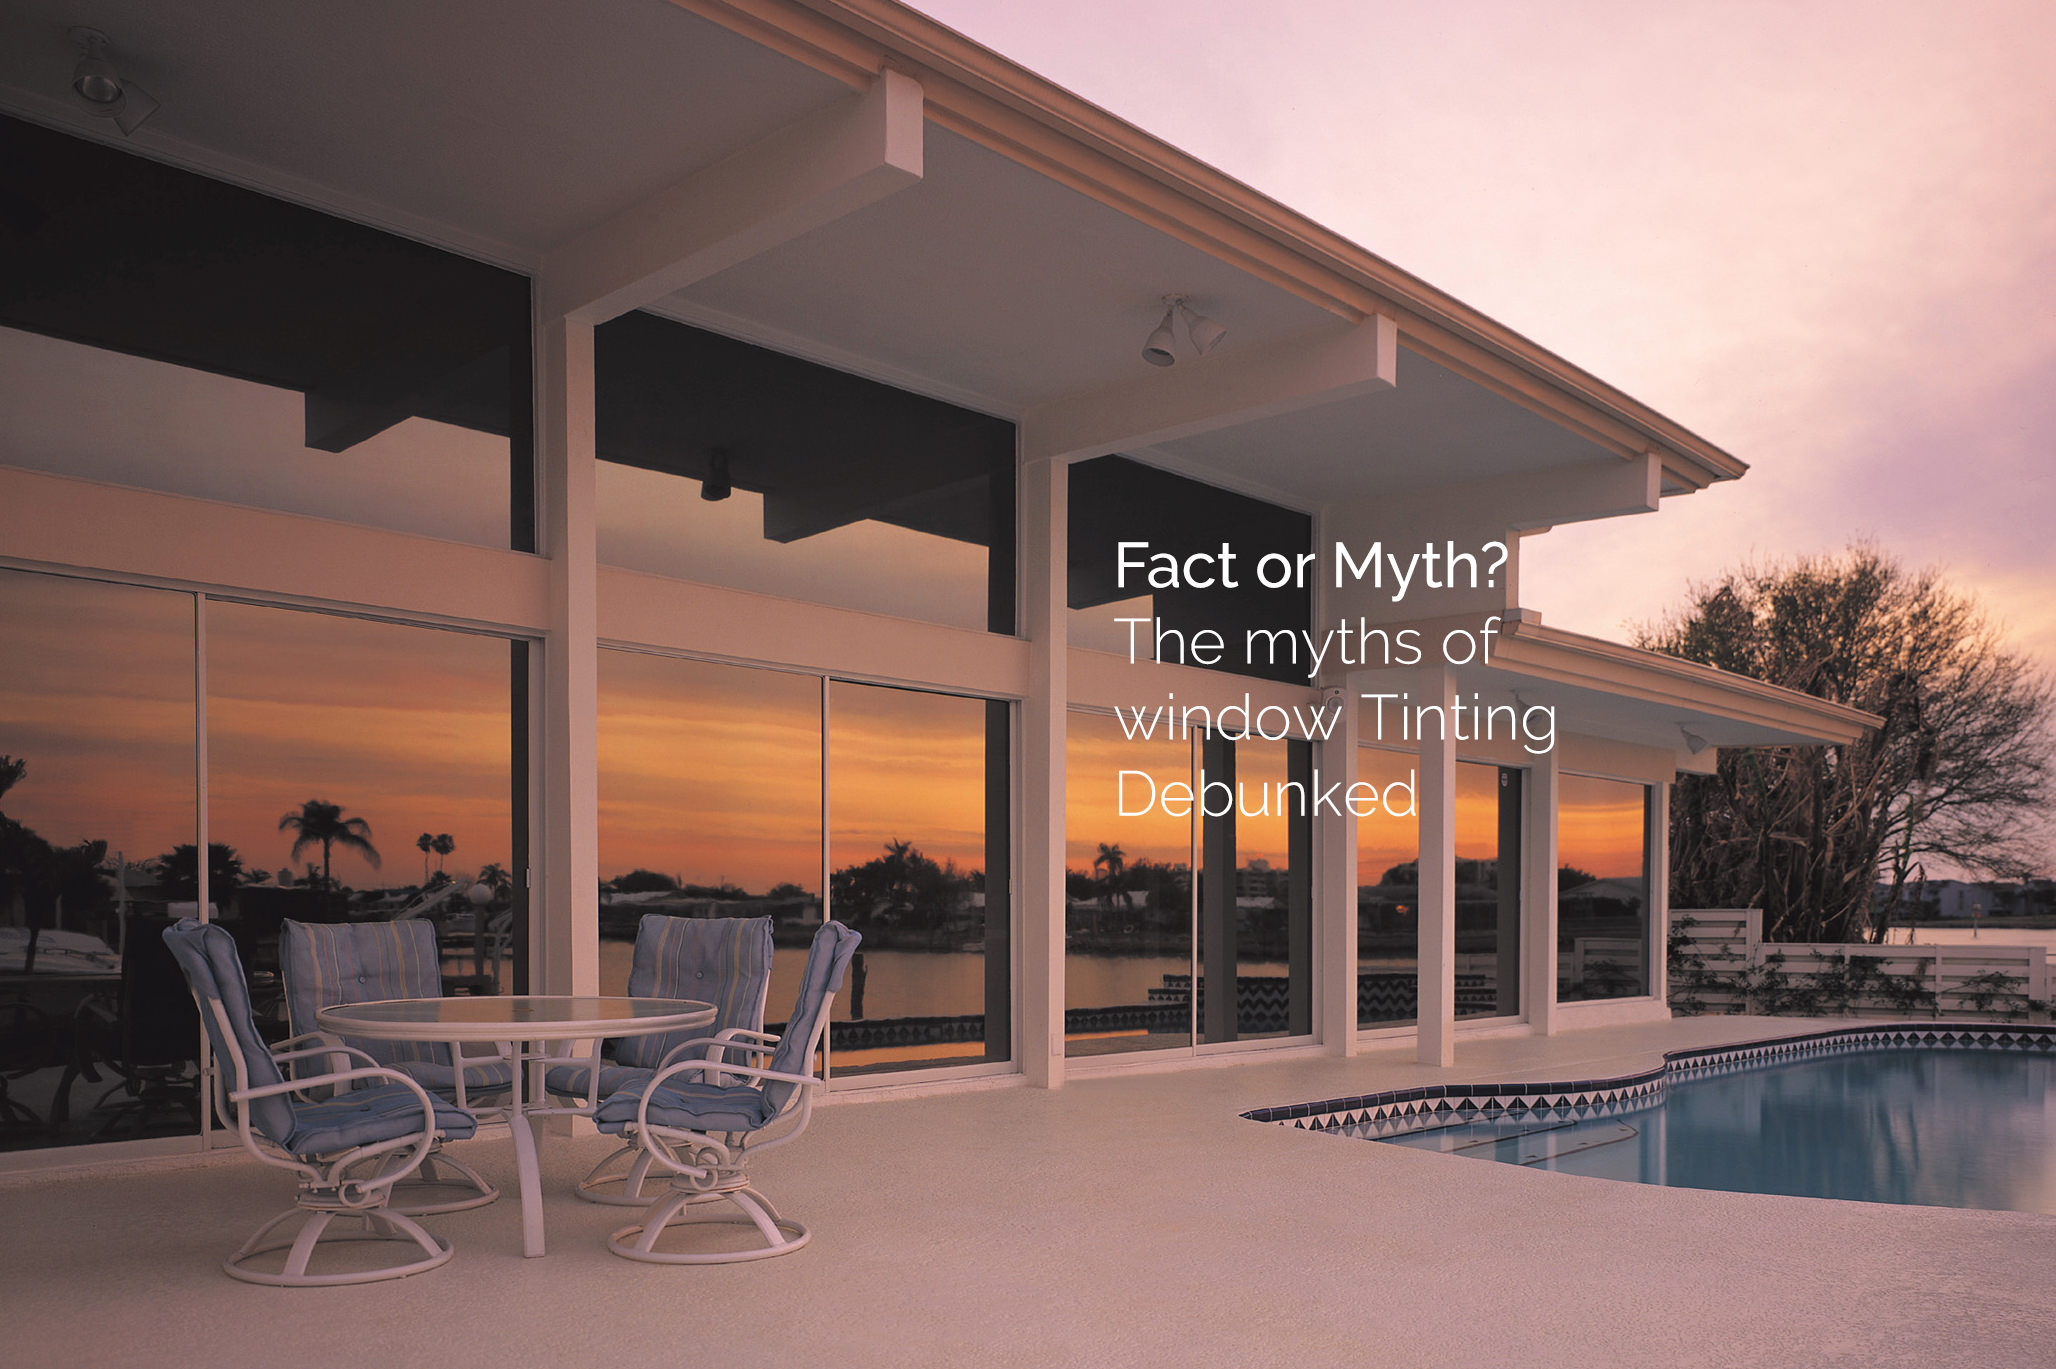 myths of window tinting debunked